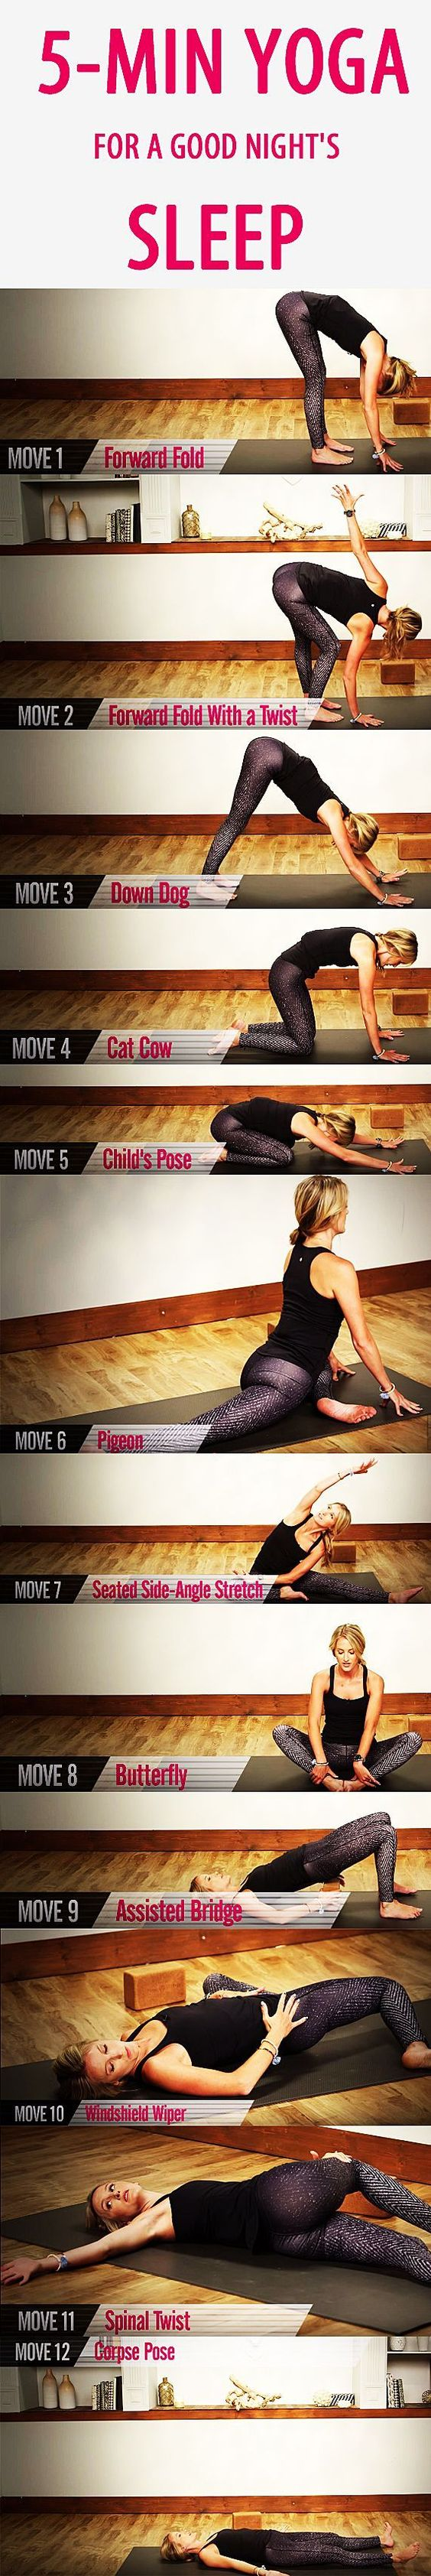 5 Minute Yoga Routine Before Bed